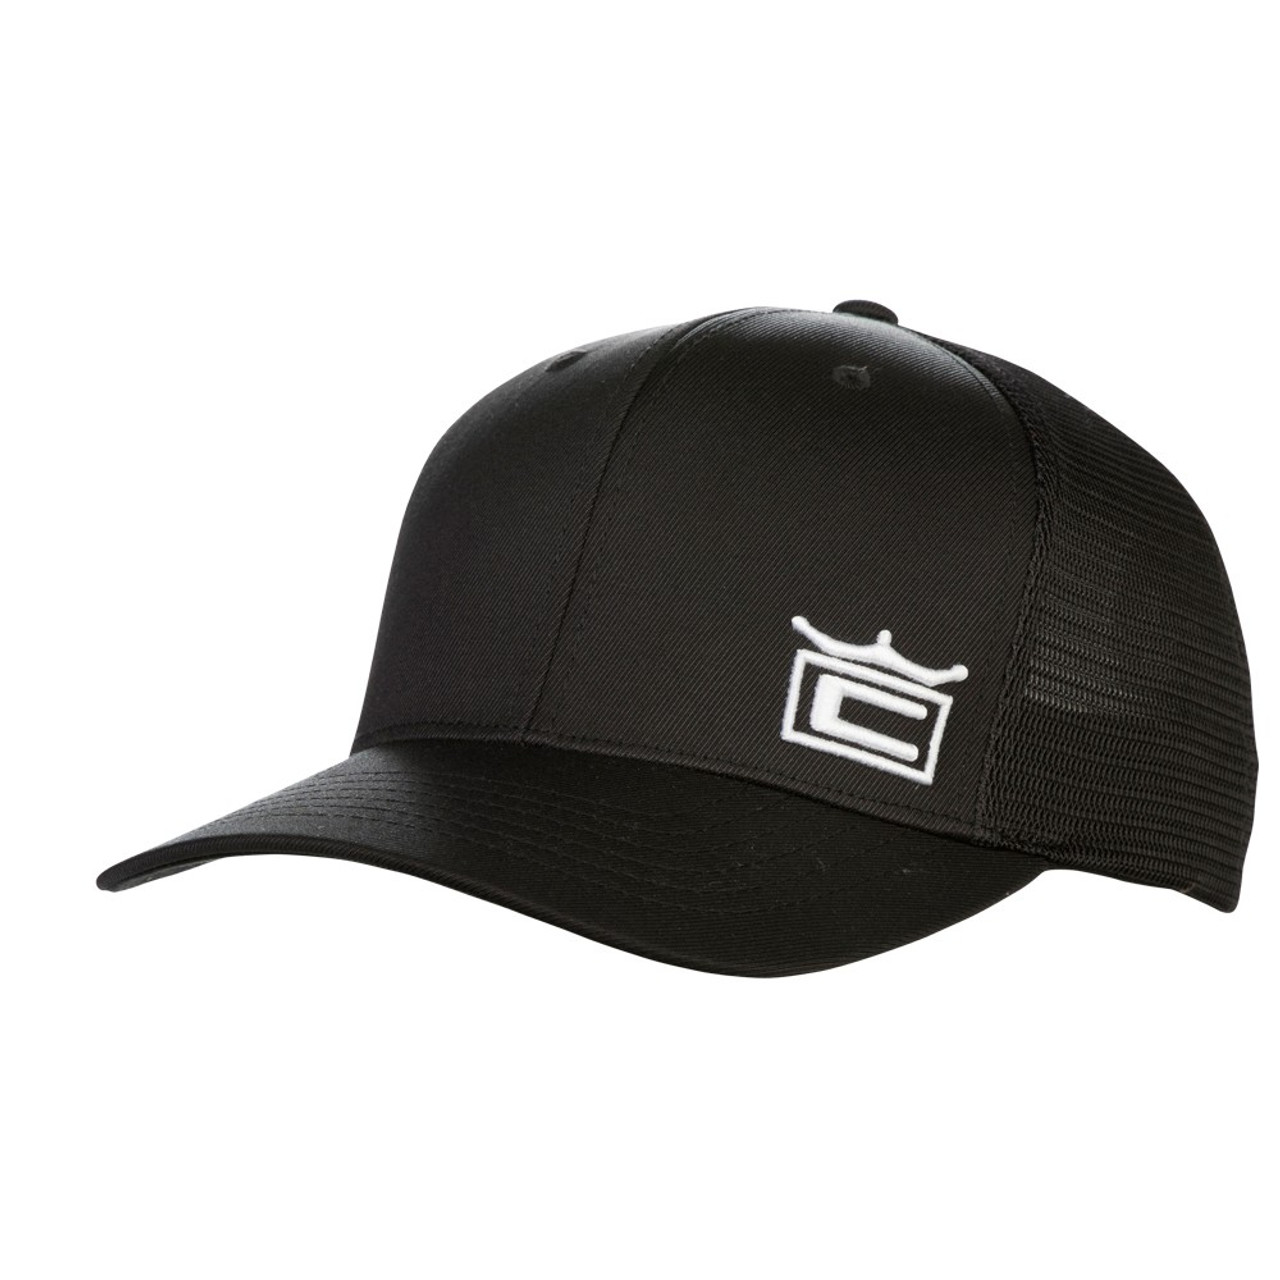 fc37534f9b099 Cobra Crown Trucker Snapback Cap - Black